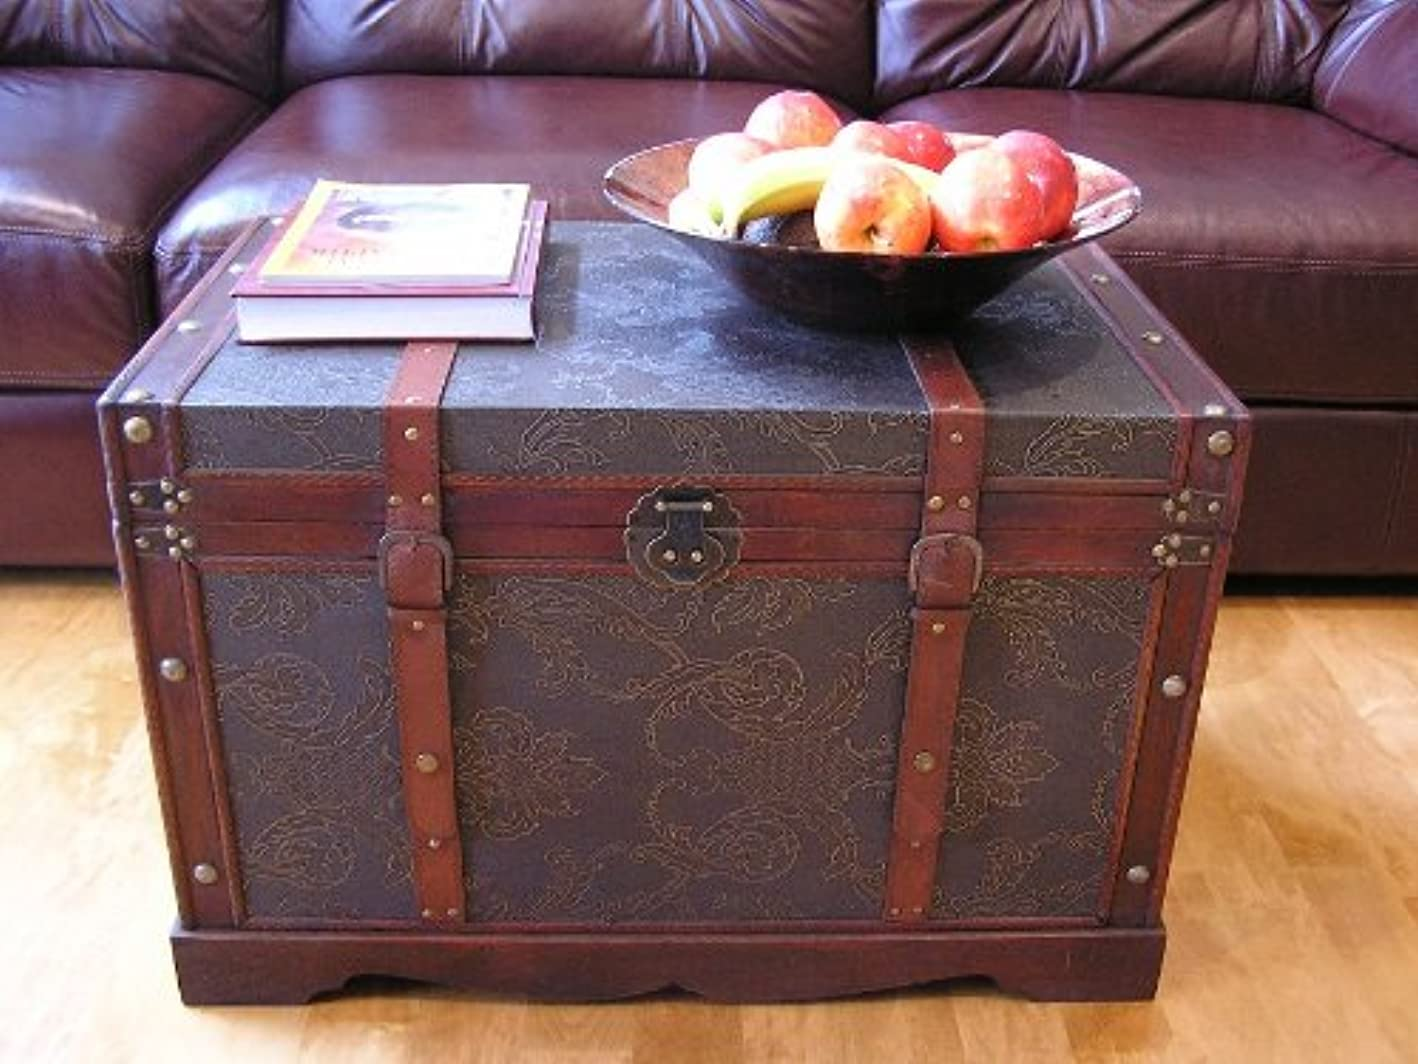 Saratoga Faux Leather Chest Wooden Steamer Trunk Set - Two Trunks